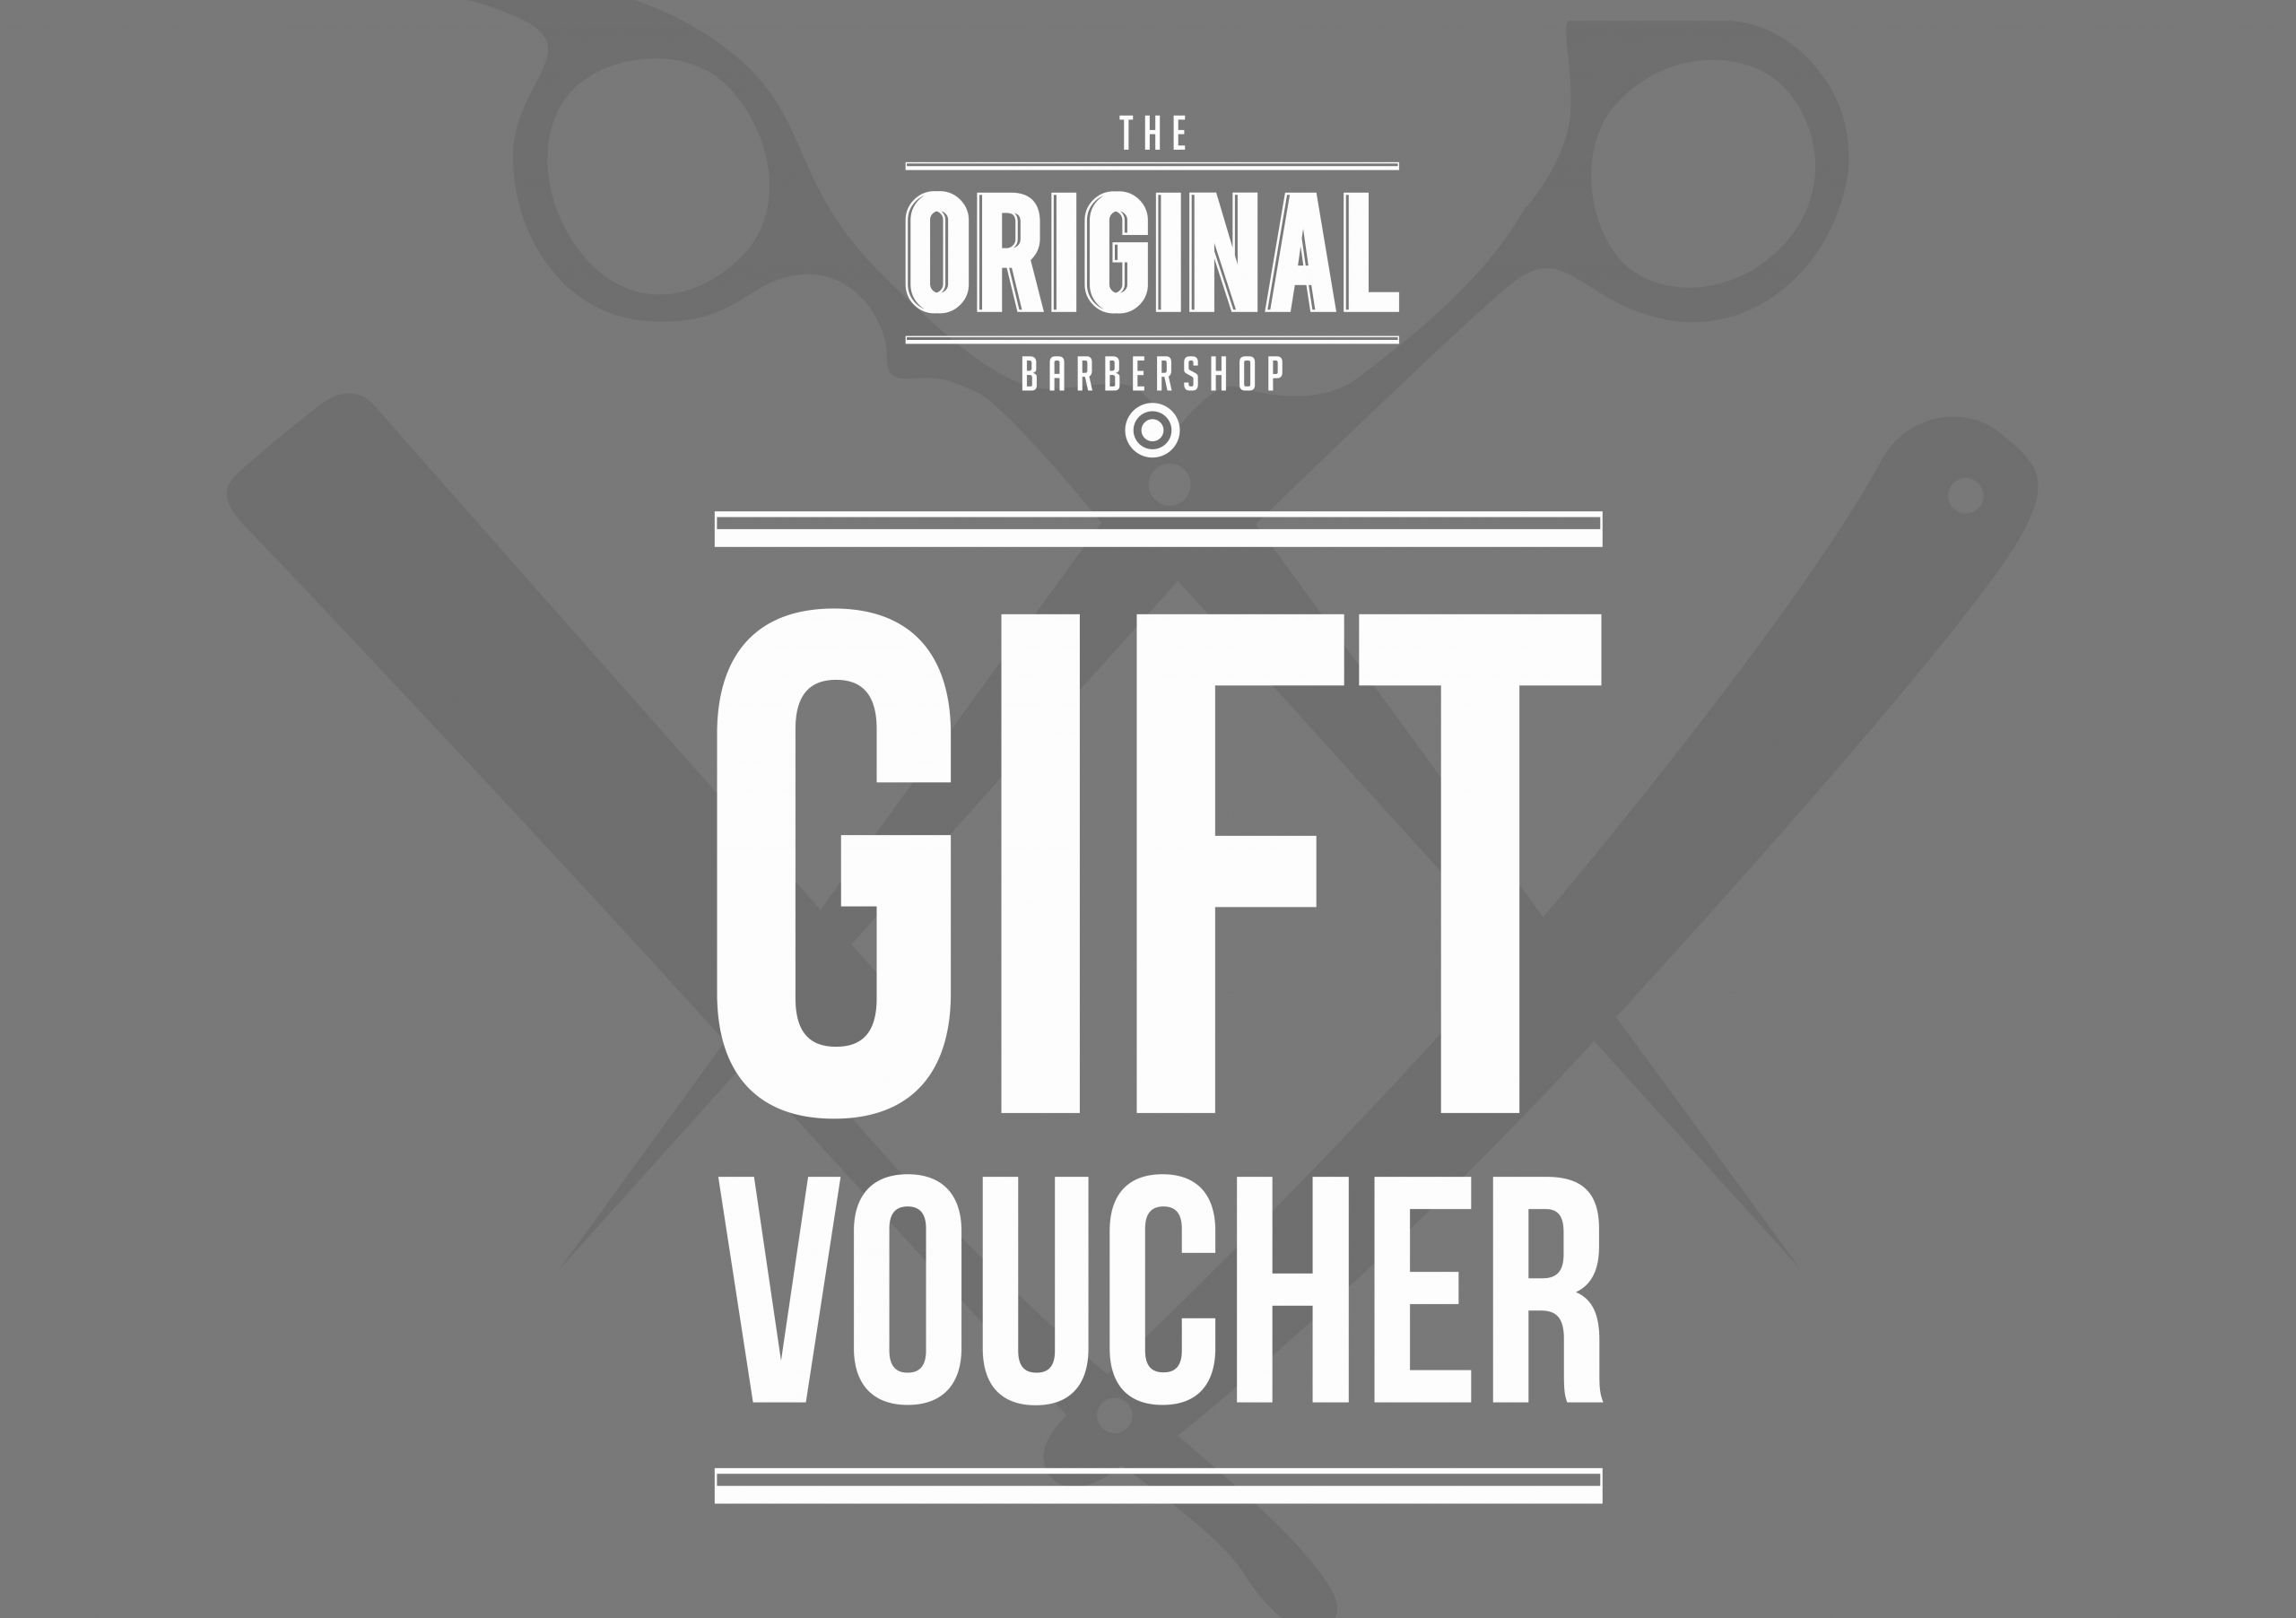 Free Haircut Certificate Template Luxury Gift Voucher – From £10 to £45